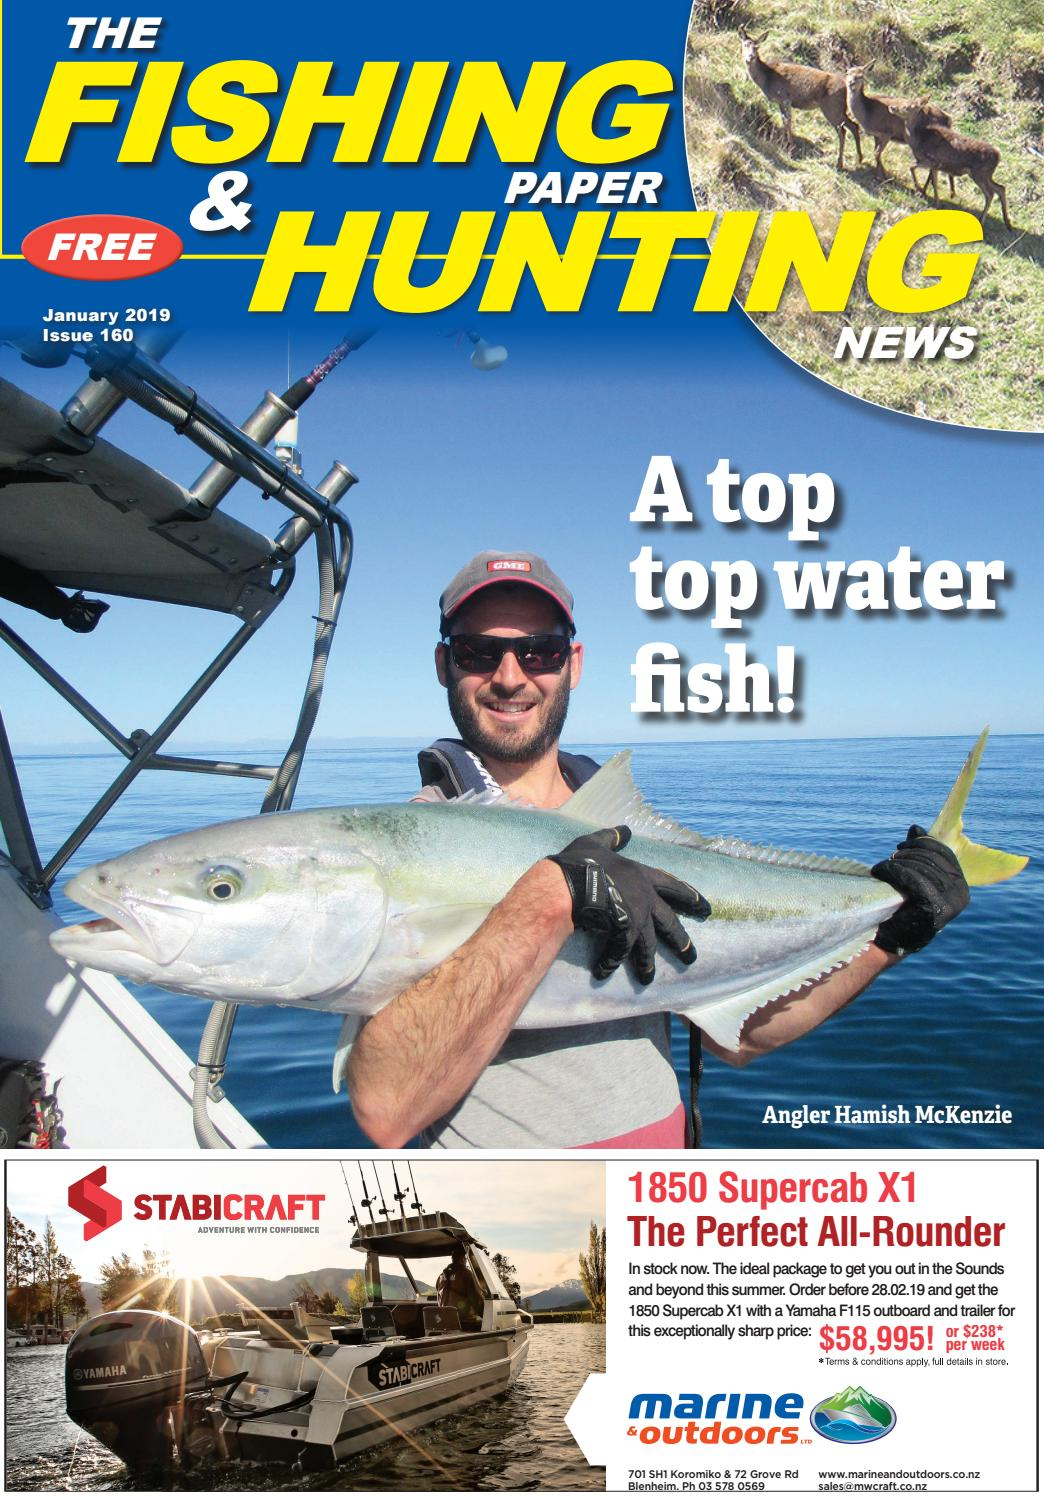 fb89a02d4331 The Fishing Paper   Hunting News January Issue 2019 No.160 by The Fishing  Paper - issuu